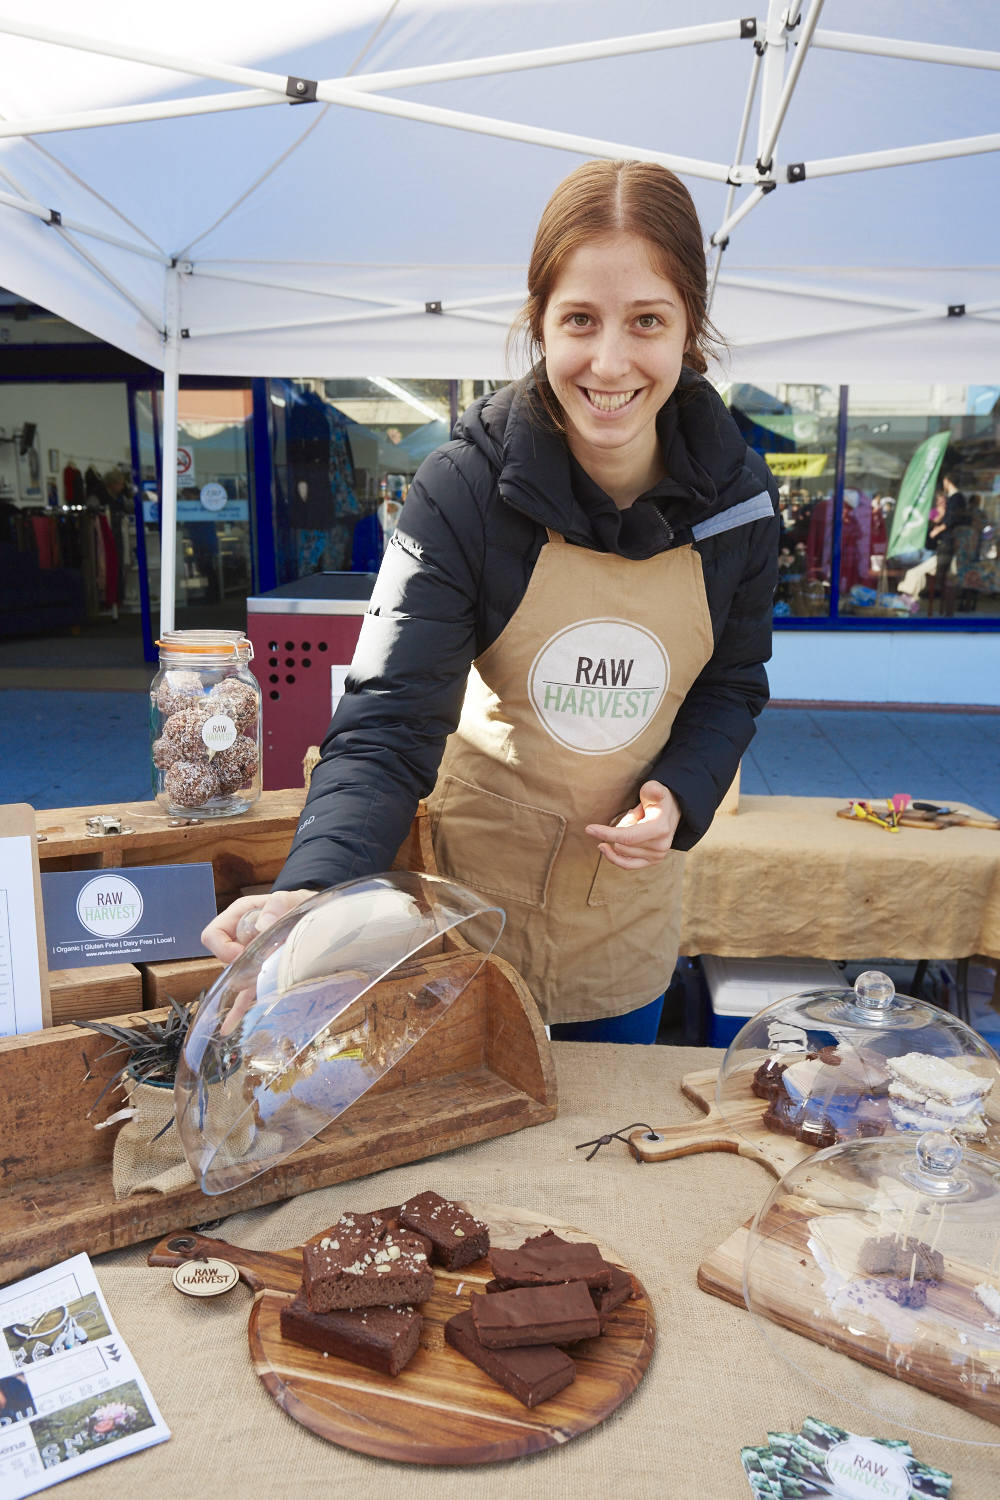 Lizi Maskiell of  Raw Harvest  fame is on the organising team for Get Cheffed.